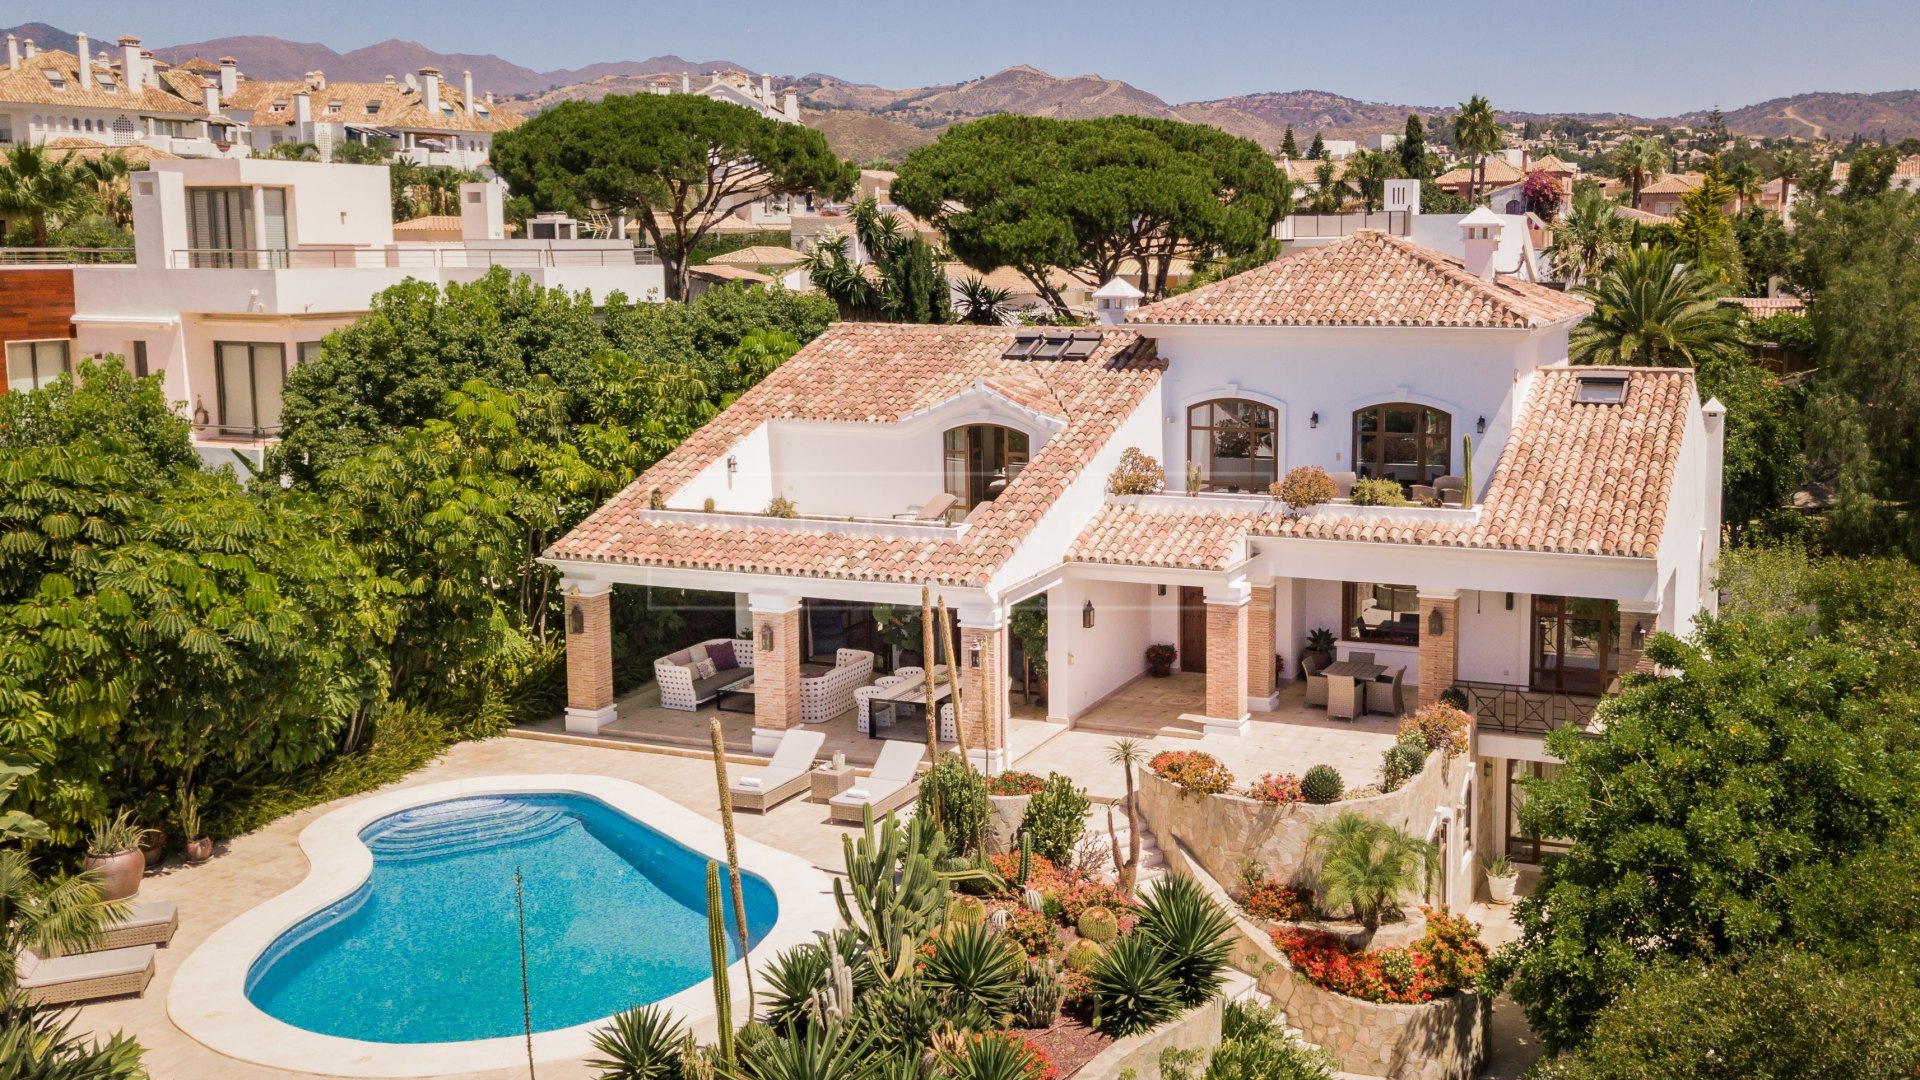 Charming family villa a short walk from the beach in Las Chapas